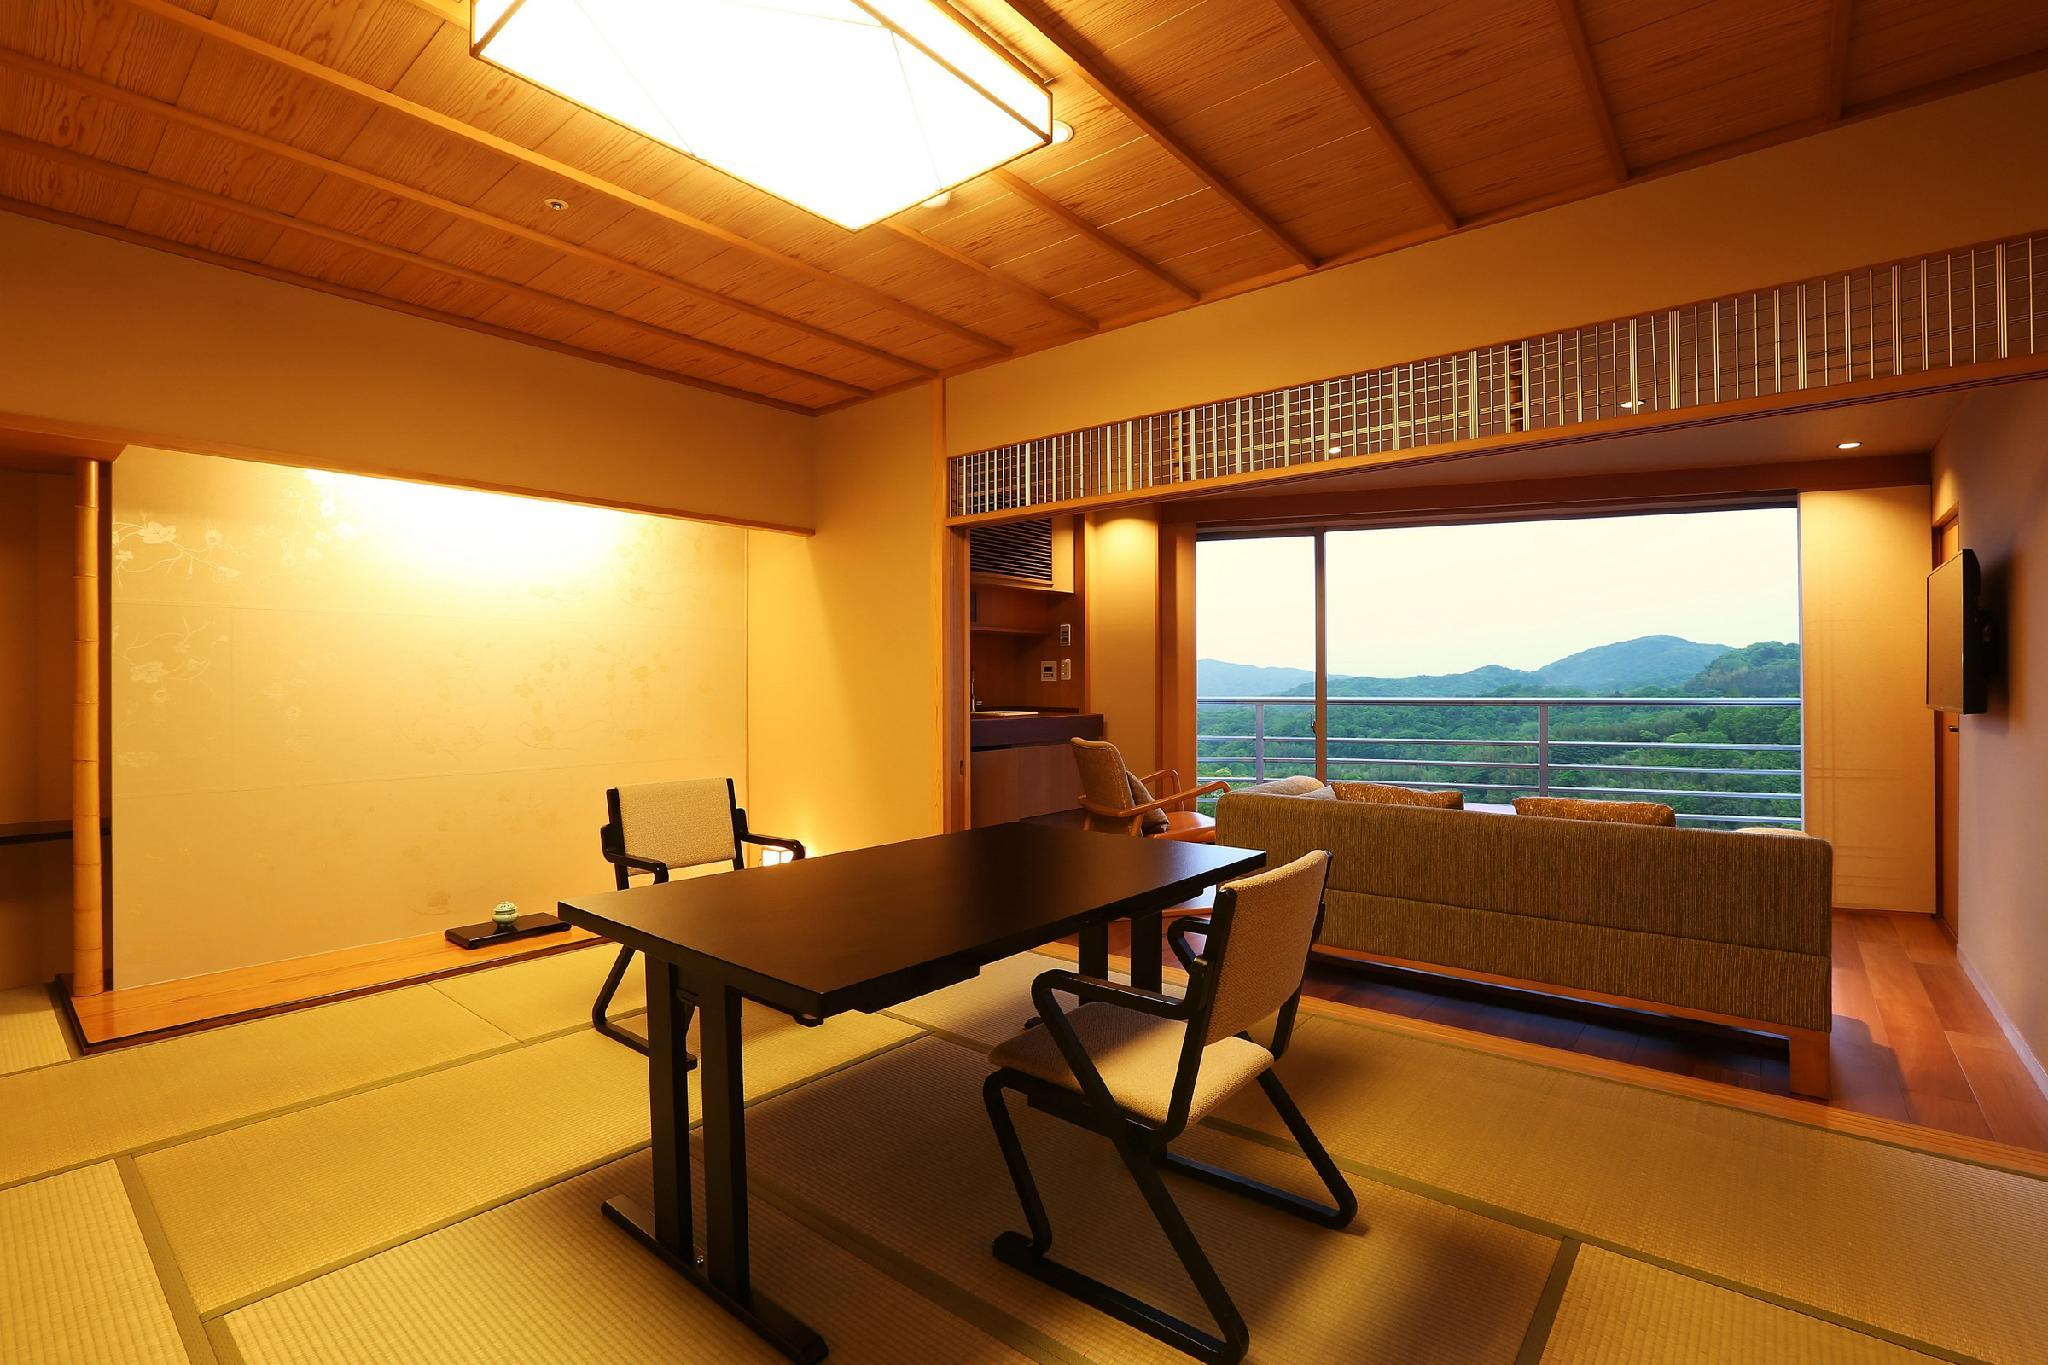 【全新裝修】和洋室客房 - 包神戶牛晚餐 (Japanese Western Style Room - Kobe Beef Dinner Included, Newly Renovated)